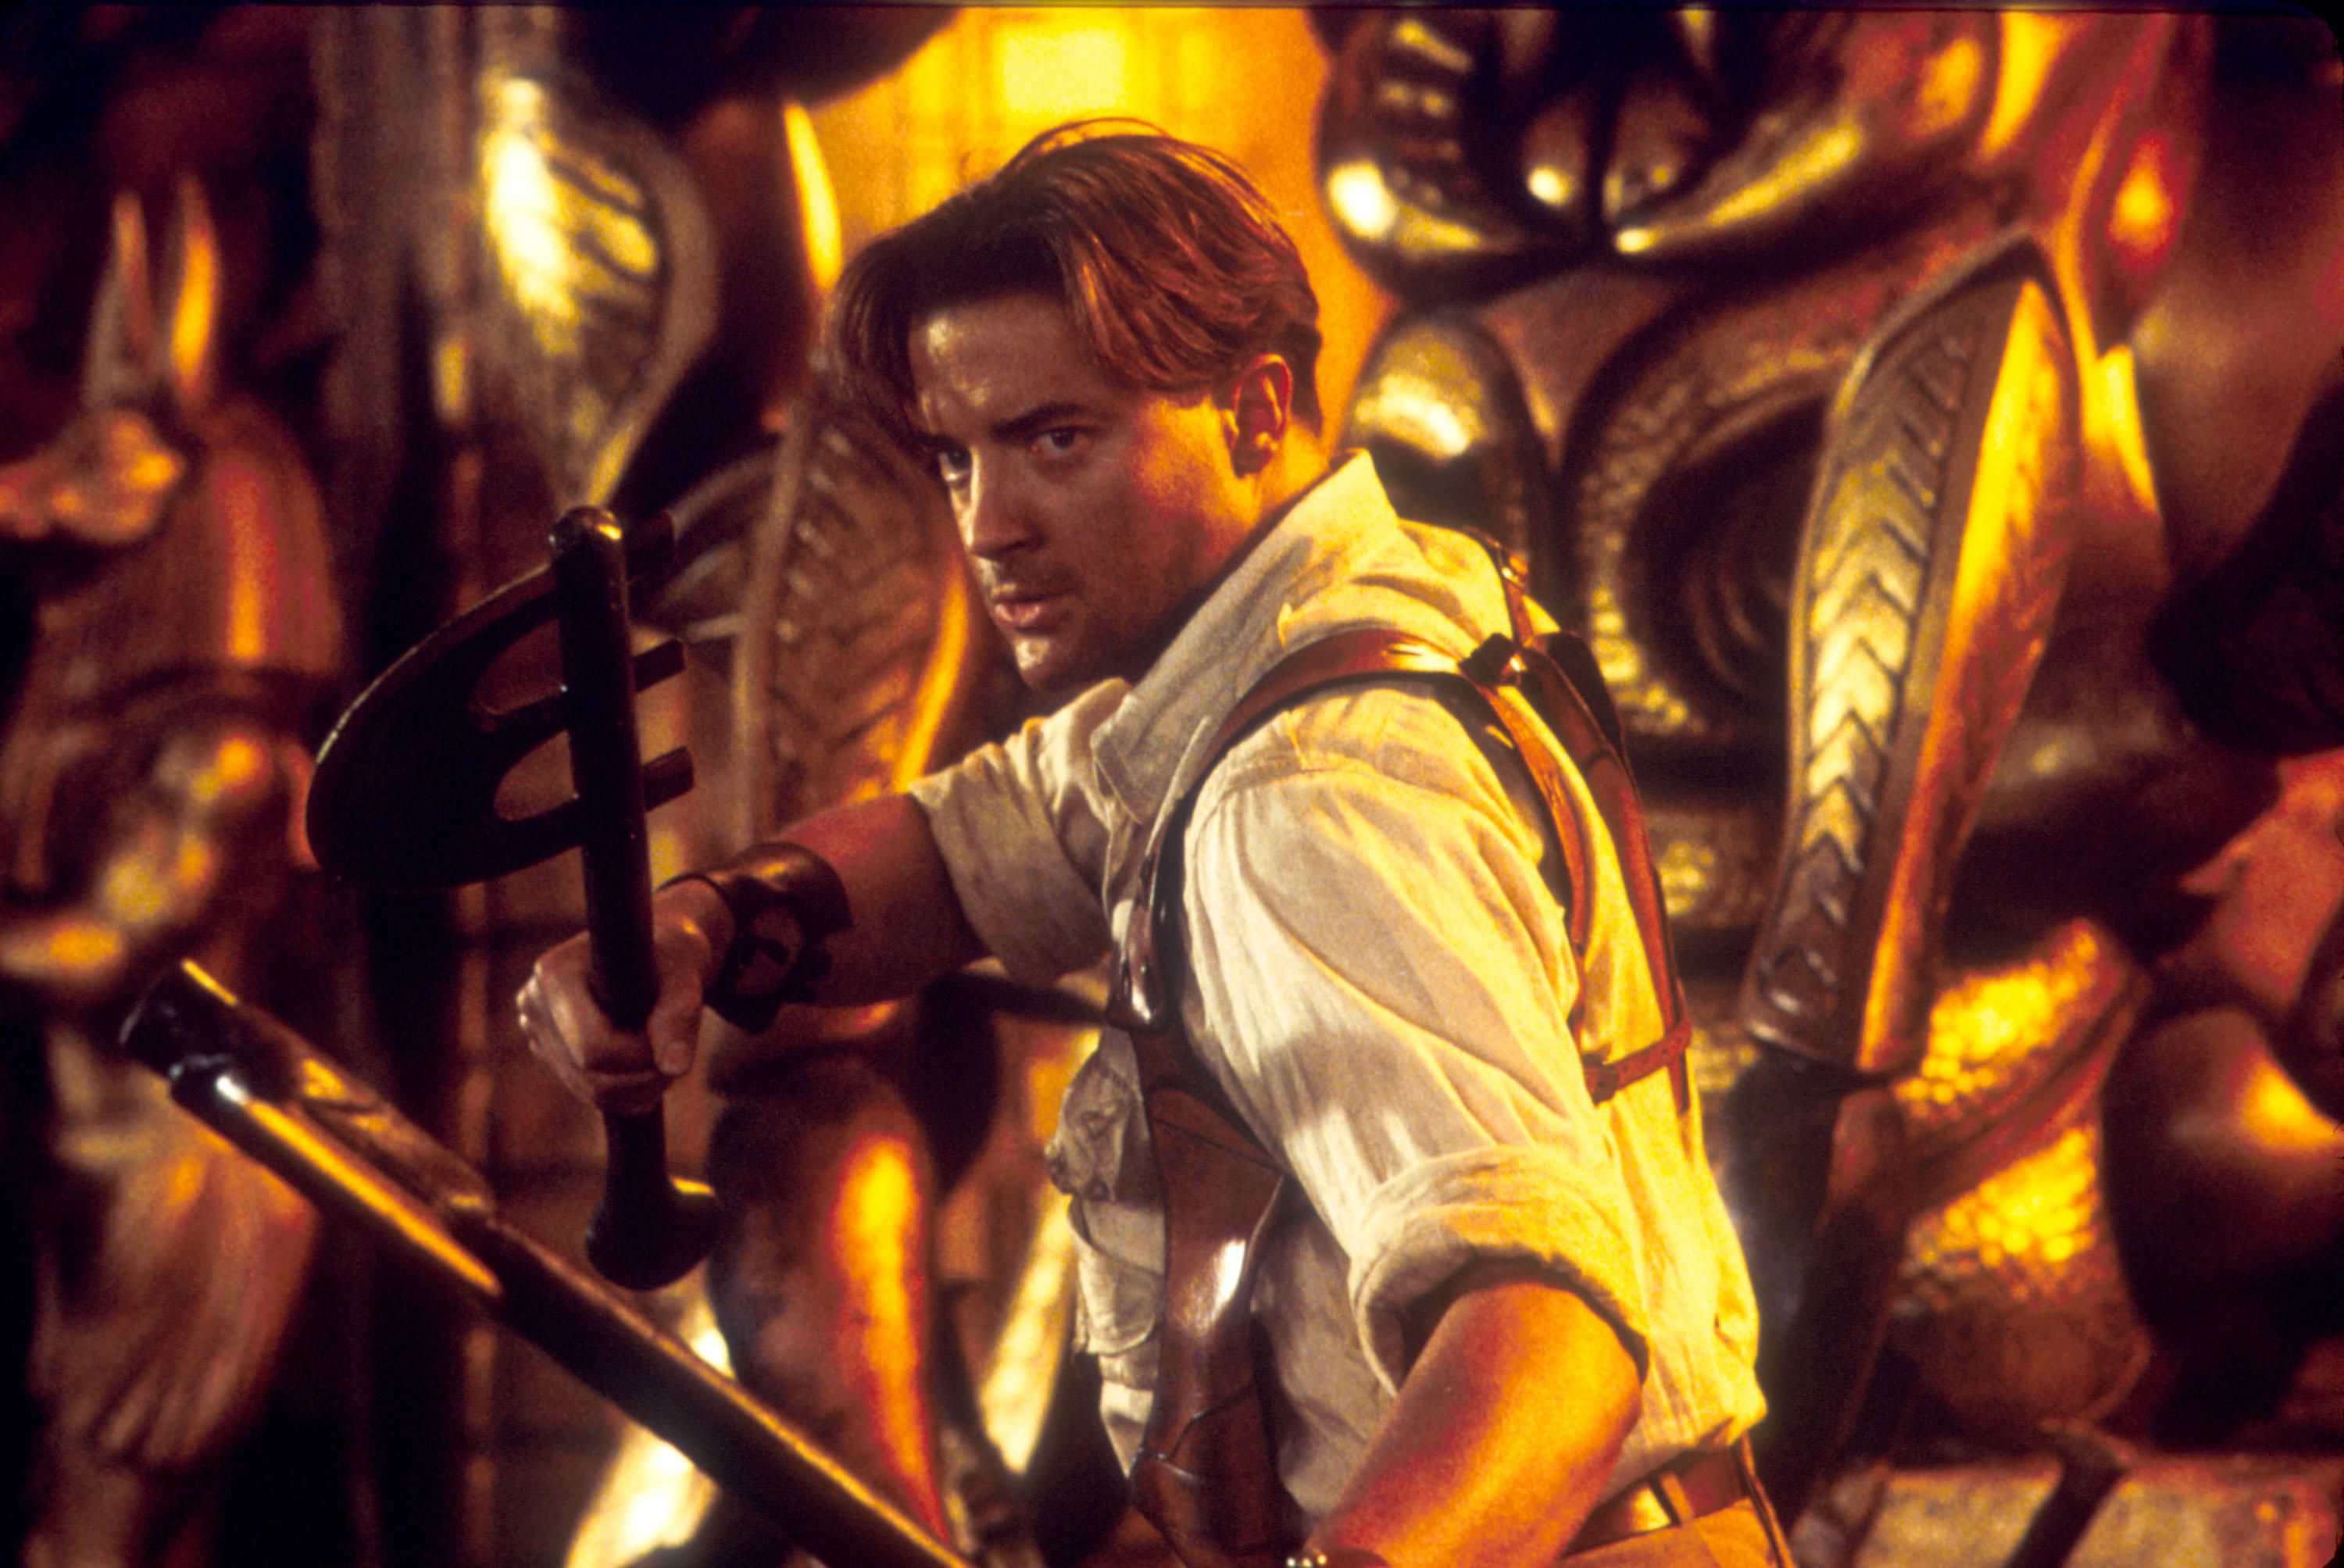 No gods, no kings, only Brendan Fraser in The Mummy.